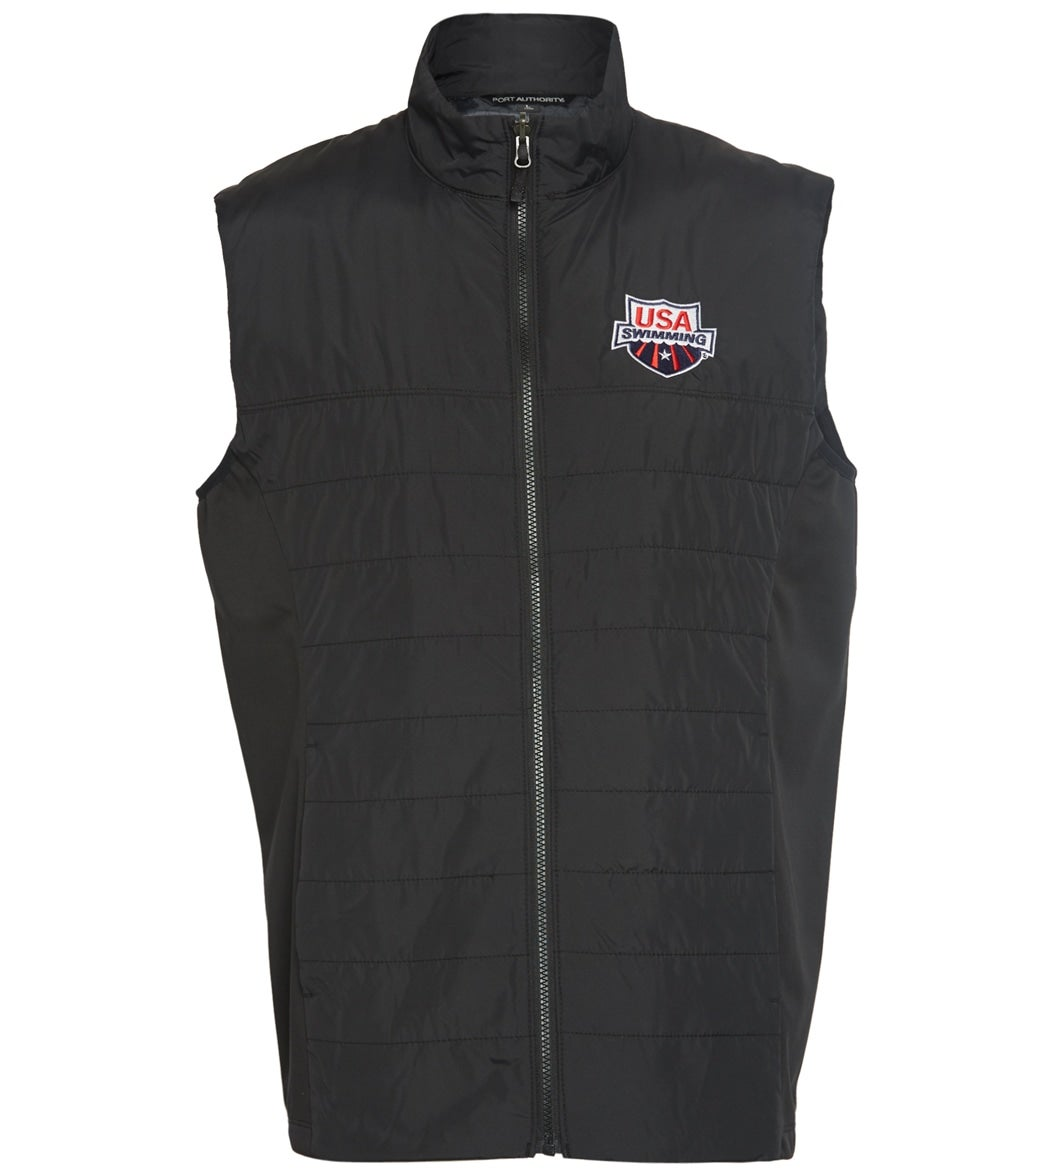 Like any vest, the perfect blend to keep the core warm without overheating, this black vest features horizontal stitching and USA Swimming logo embroidered on chest.|https://www.swimoutlet.com/p/usa-swimming-unisex-insulated-vest-8196334/?color=9325|55.95|ftf3